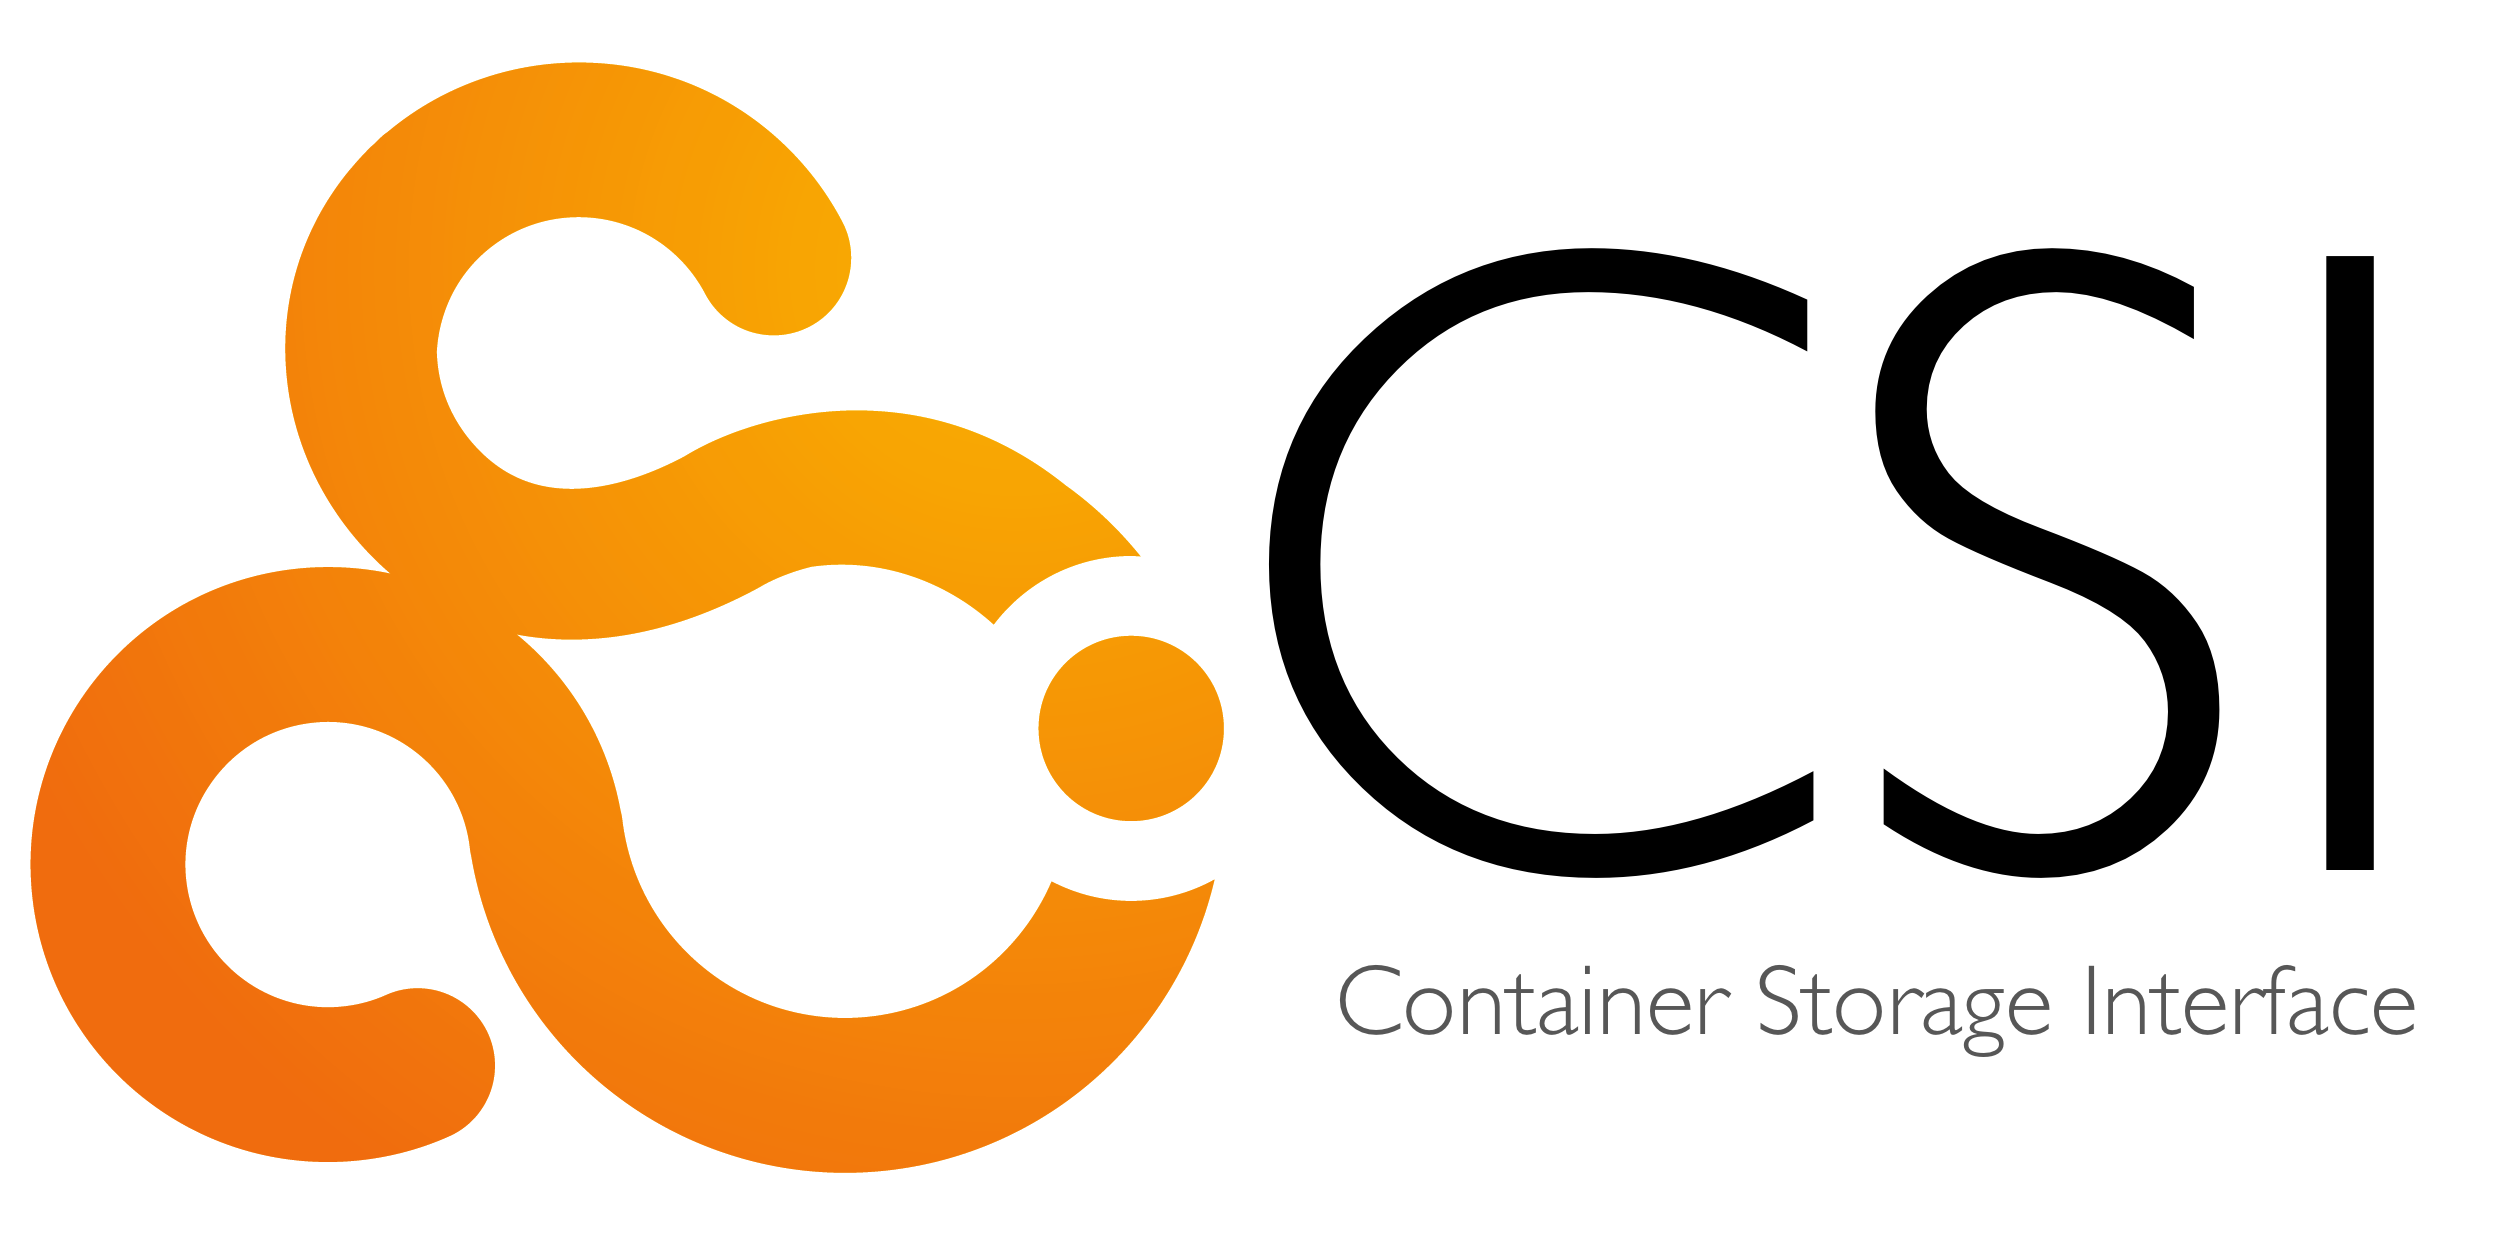 How To Write A Container Storage Interface (CSI) Plugin